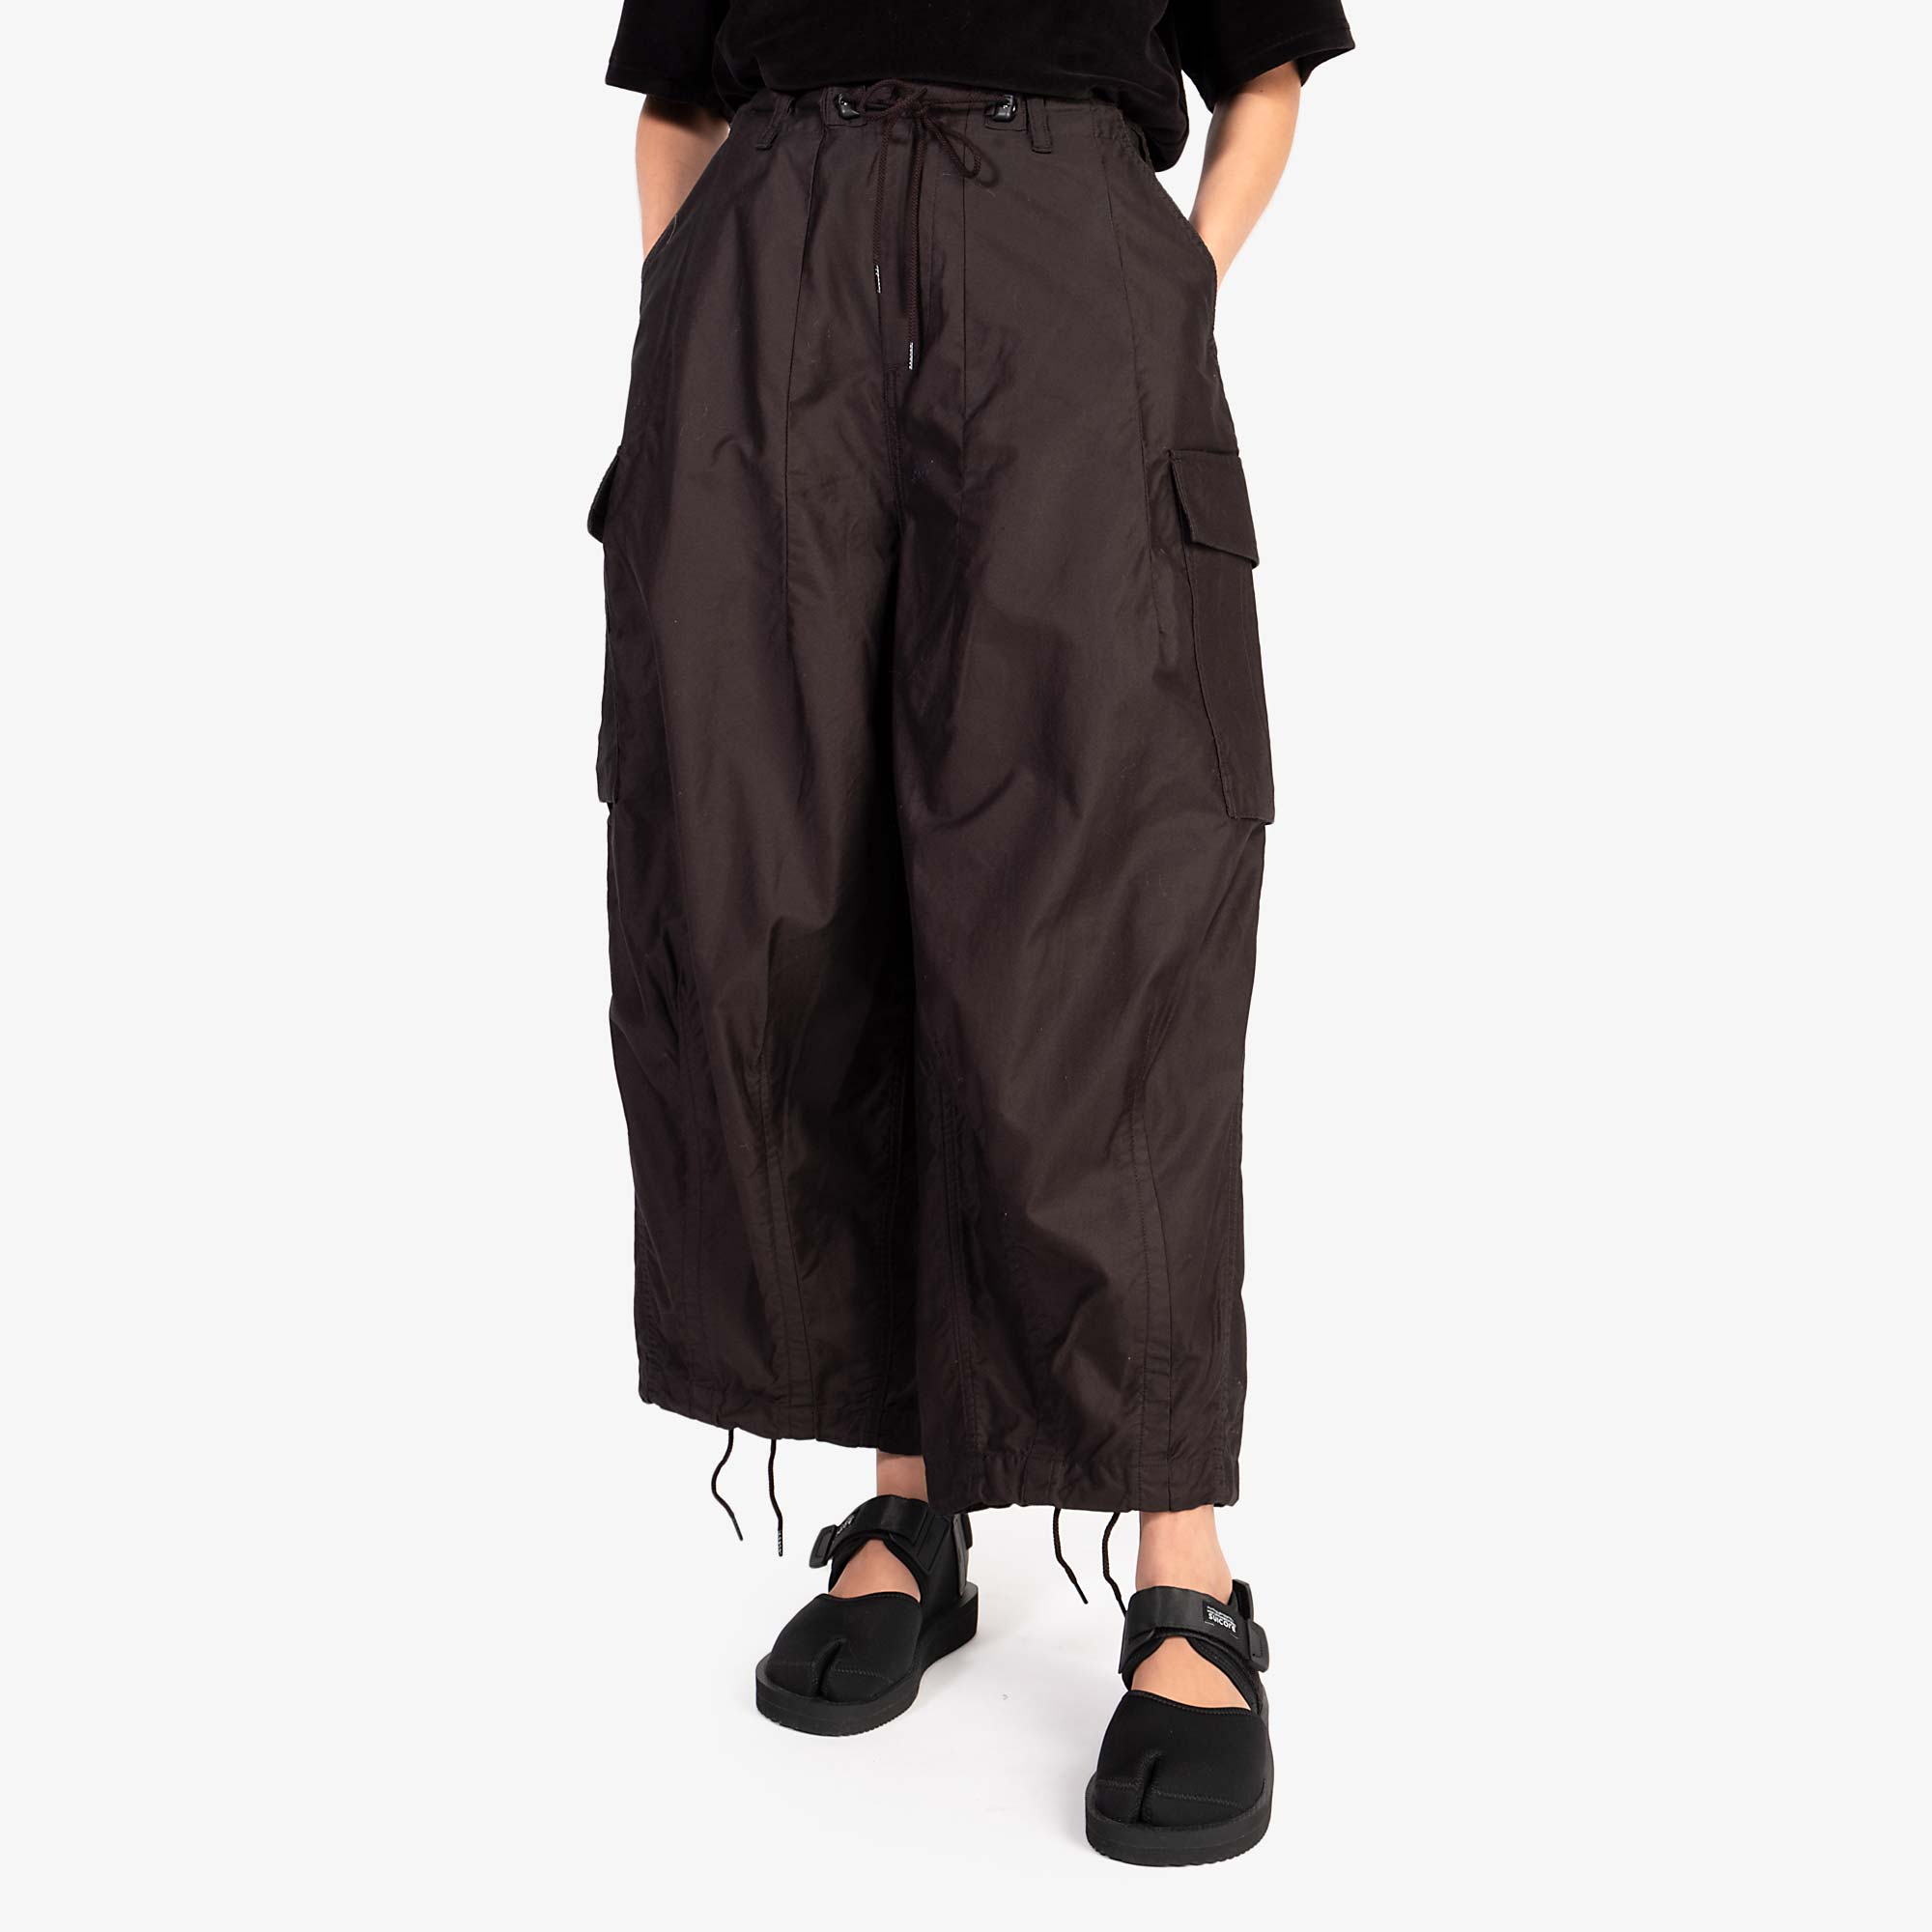 Needles W' H.D. BDU Pant - Black 3